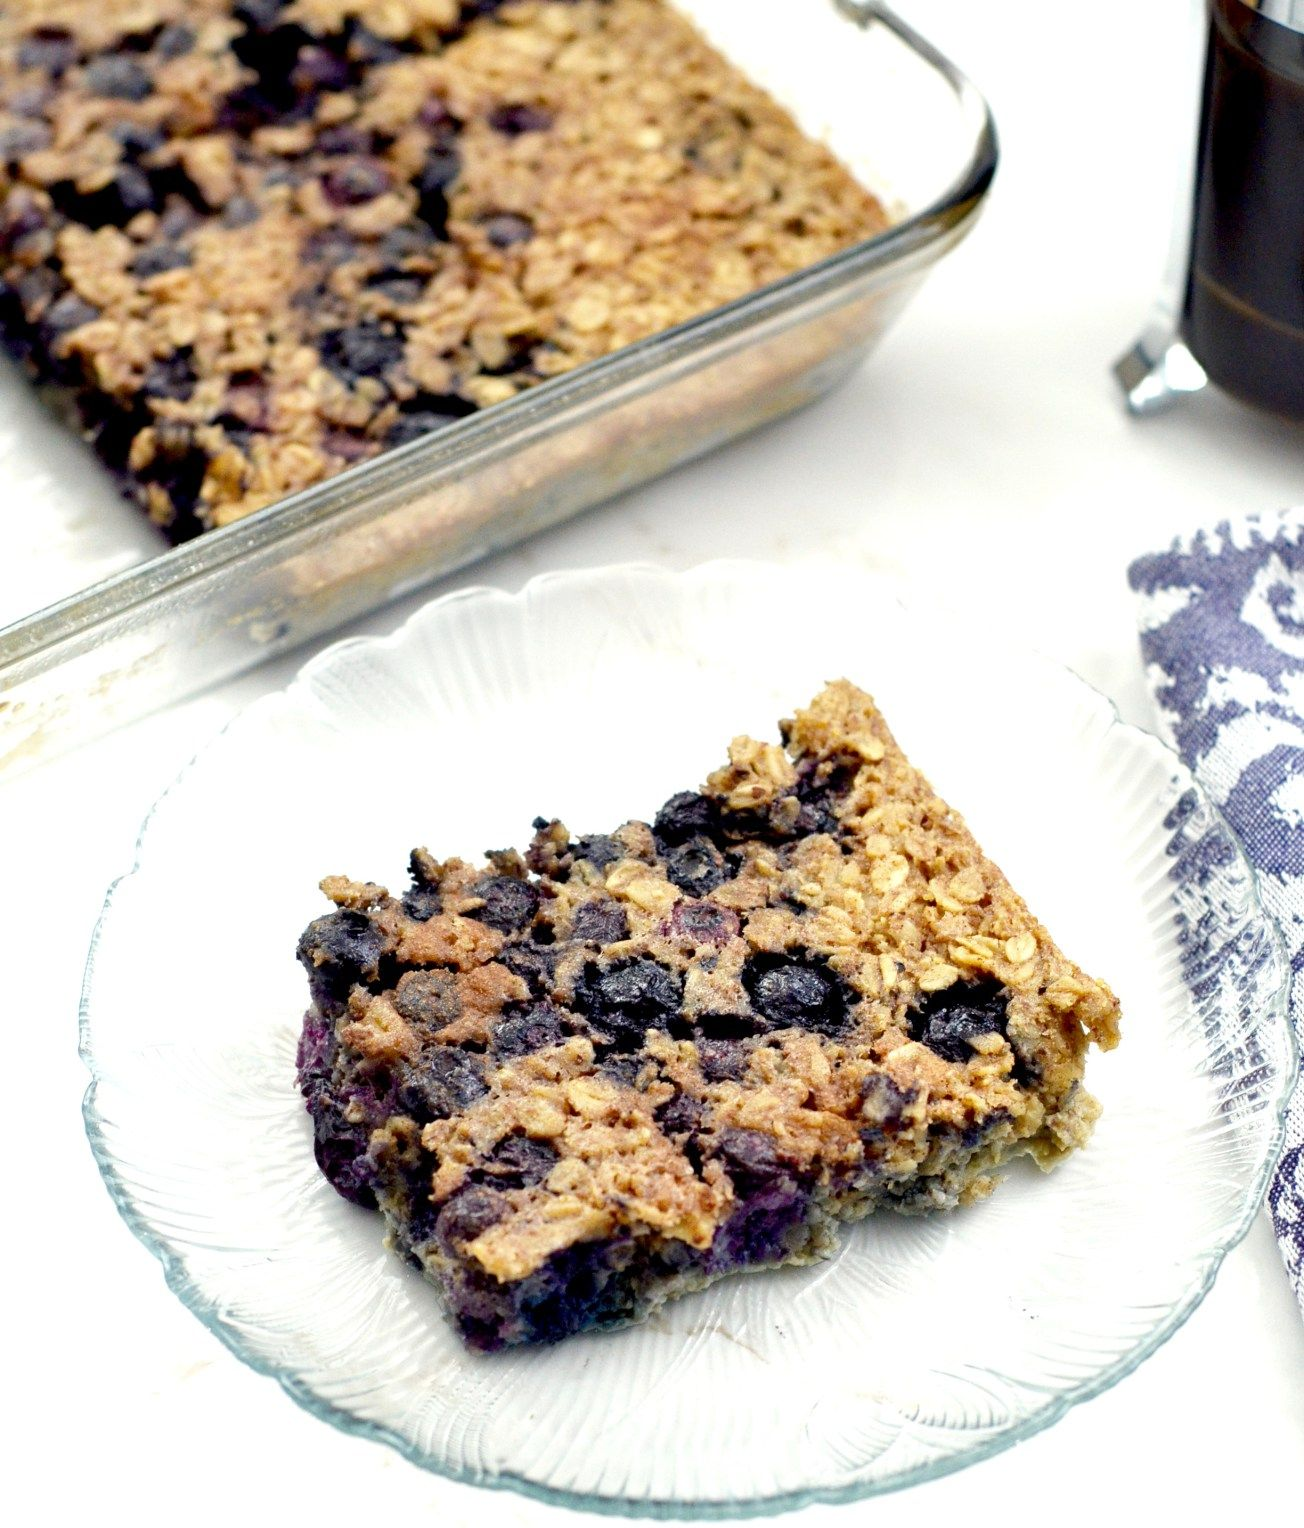 Healthy baked blueberry oatmeal recipe! The addition of Greek yogurt and almond meal make this a protein-rich breakfast! Plus it's gluten-free, refined-sugar free and feeds a crowd!